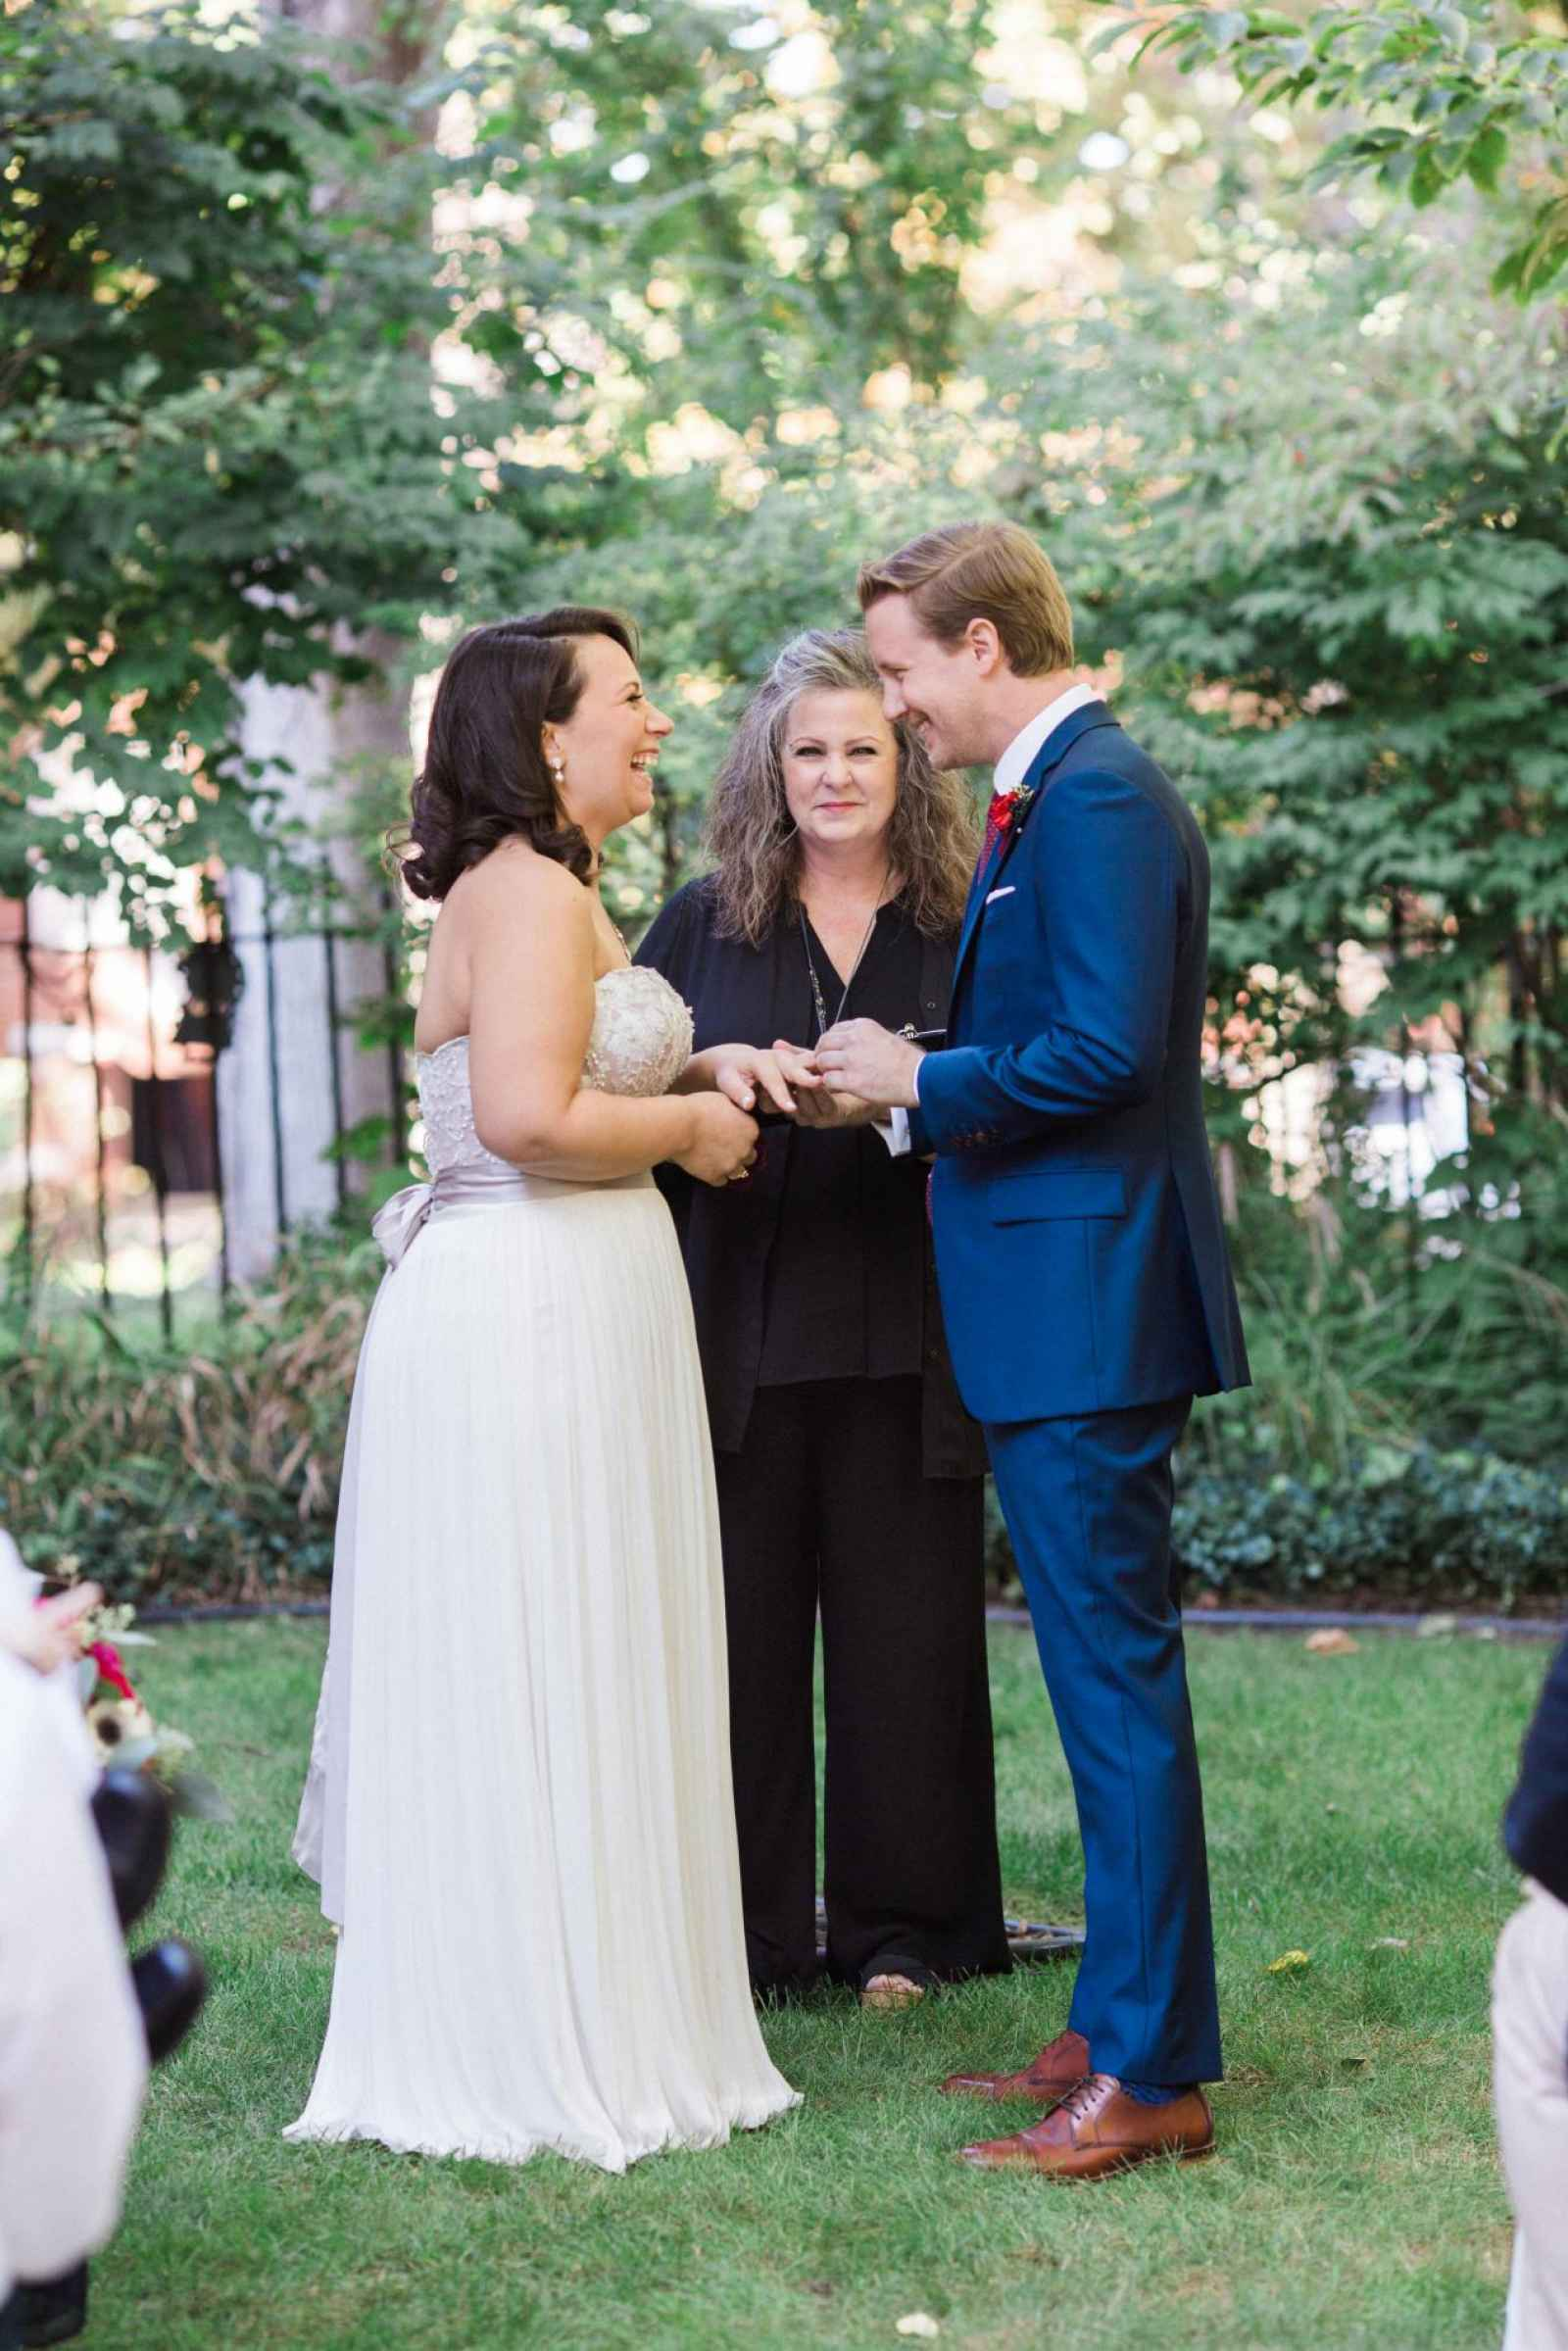 The real wedding of cat and miles ludy weddingday magazine is so much to do when planning a wedding that i encourage everyone to delegate tasks to others so you dont stress yourself out before the wedding day solutioingenieria Choice Image